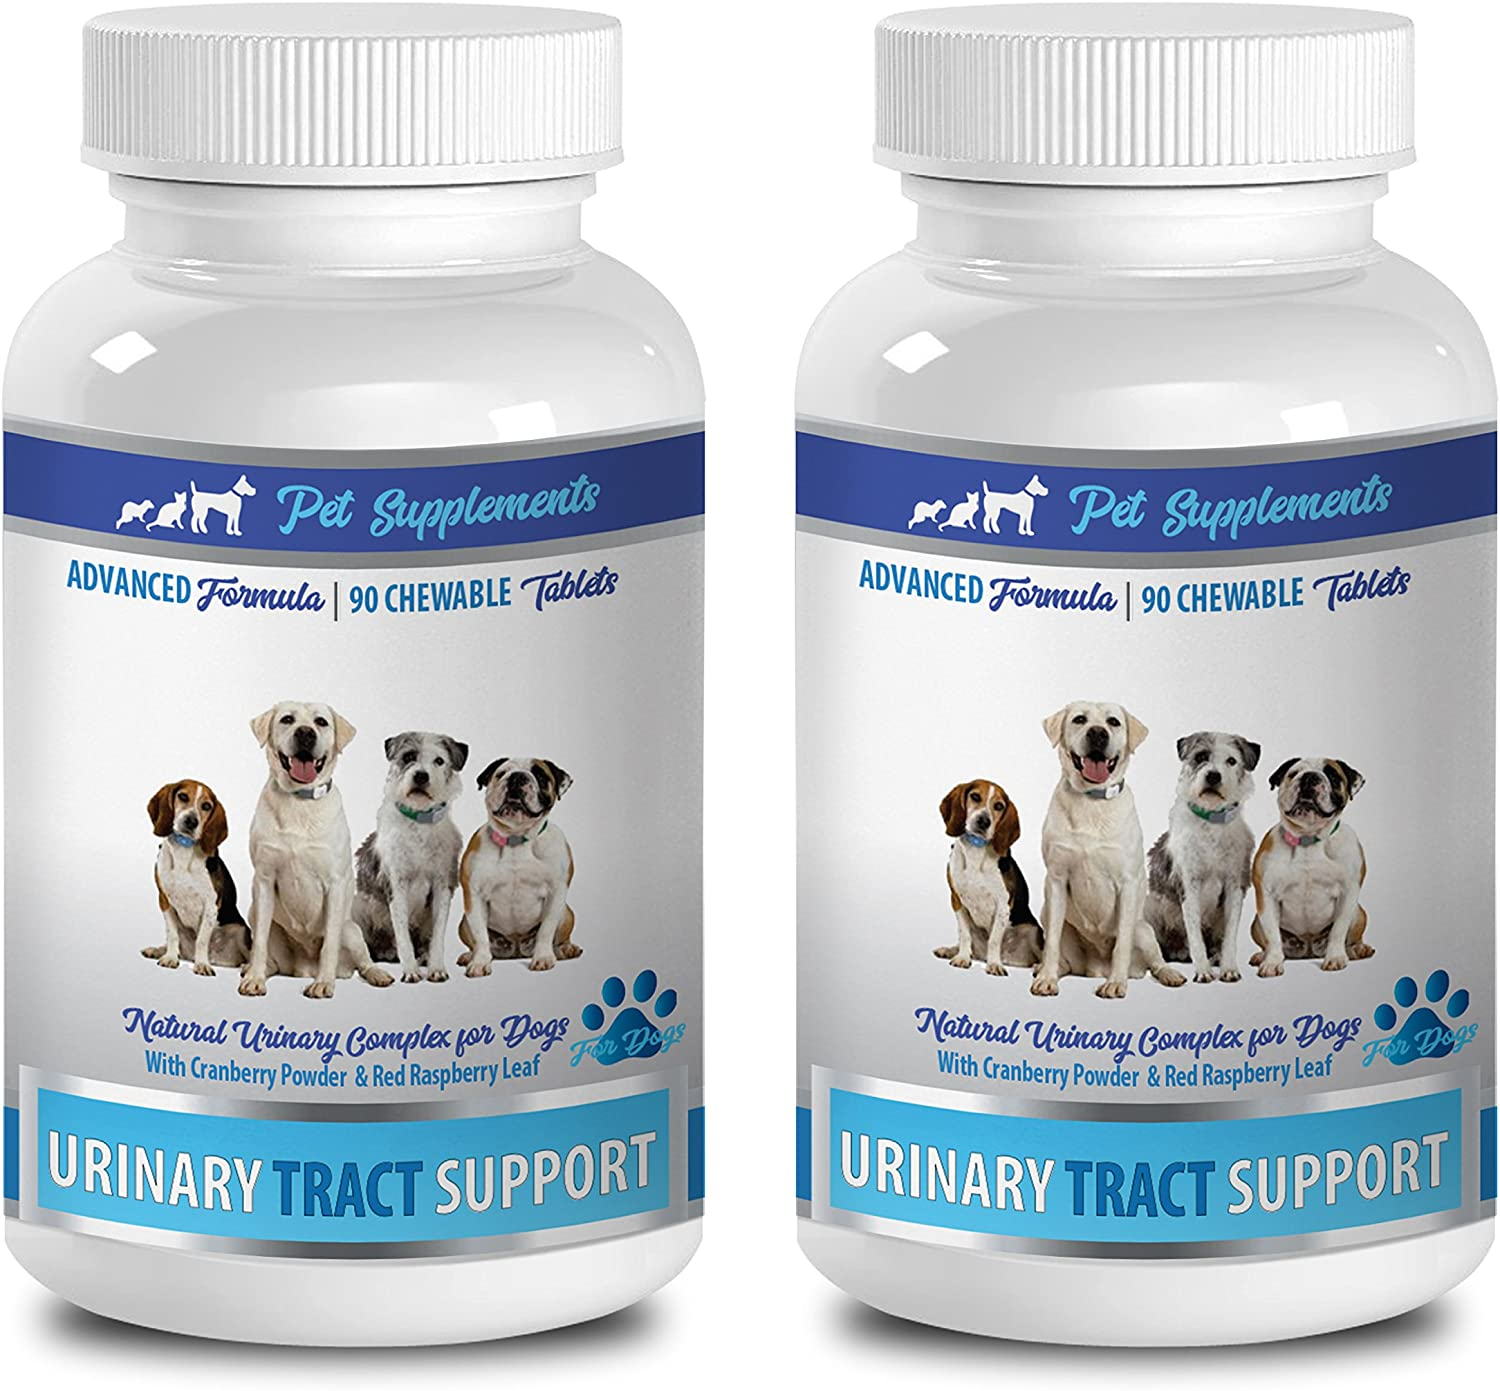 PET SUPPLEMENTS Dog Urinary Treats Support Tract for Ranking TOP6 sale -